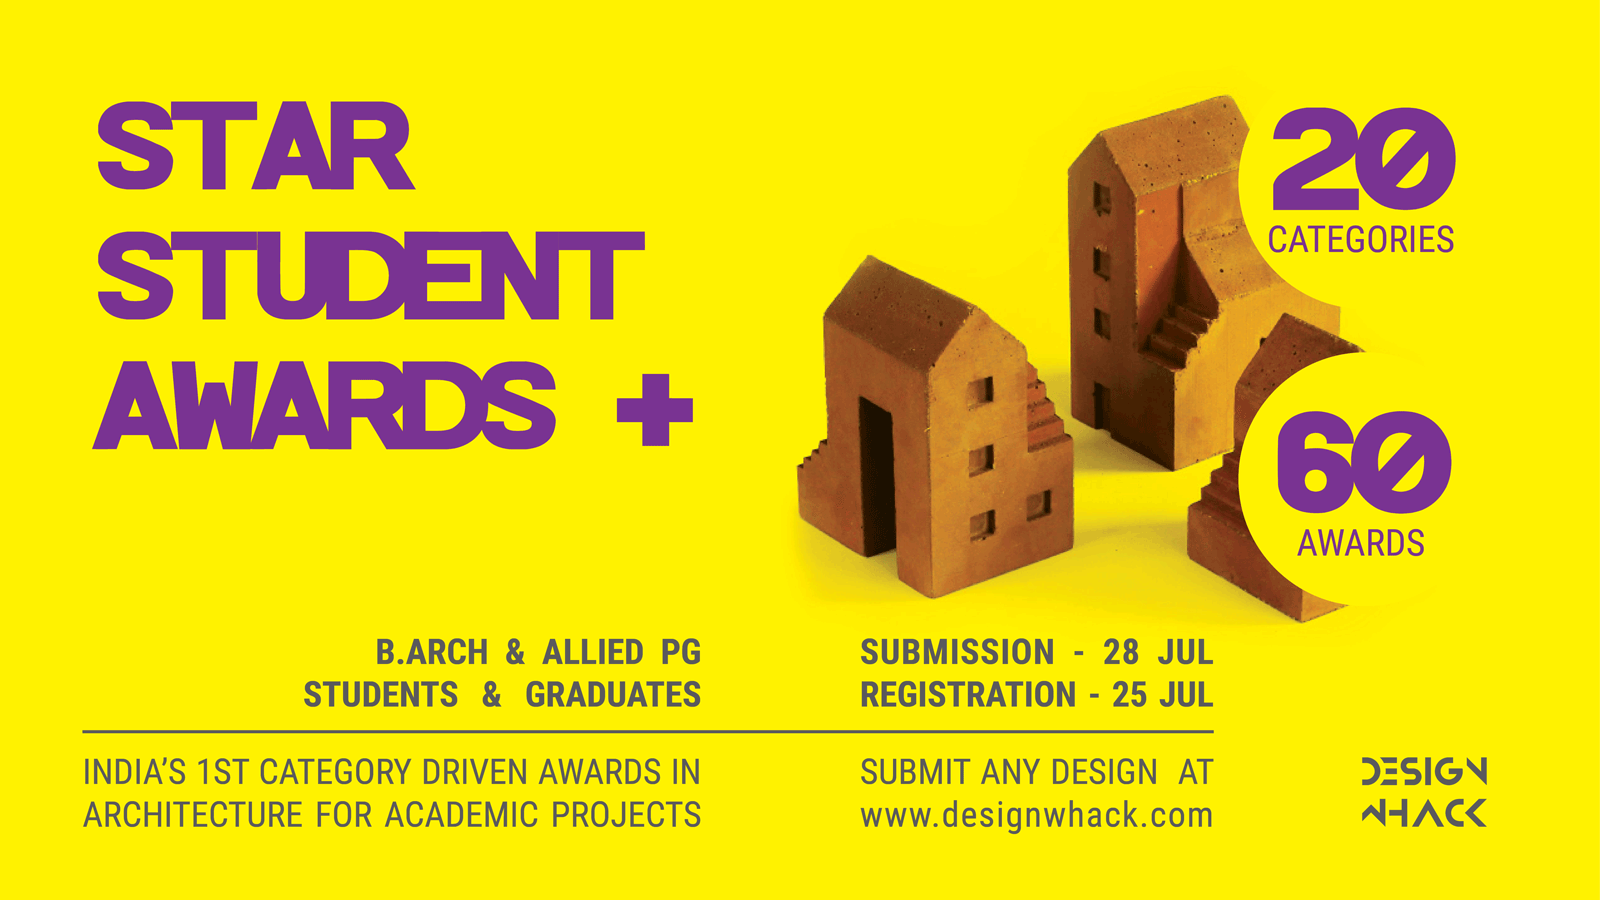 Star Student Awards | UG PG Students | Recent Graduates